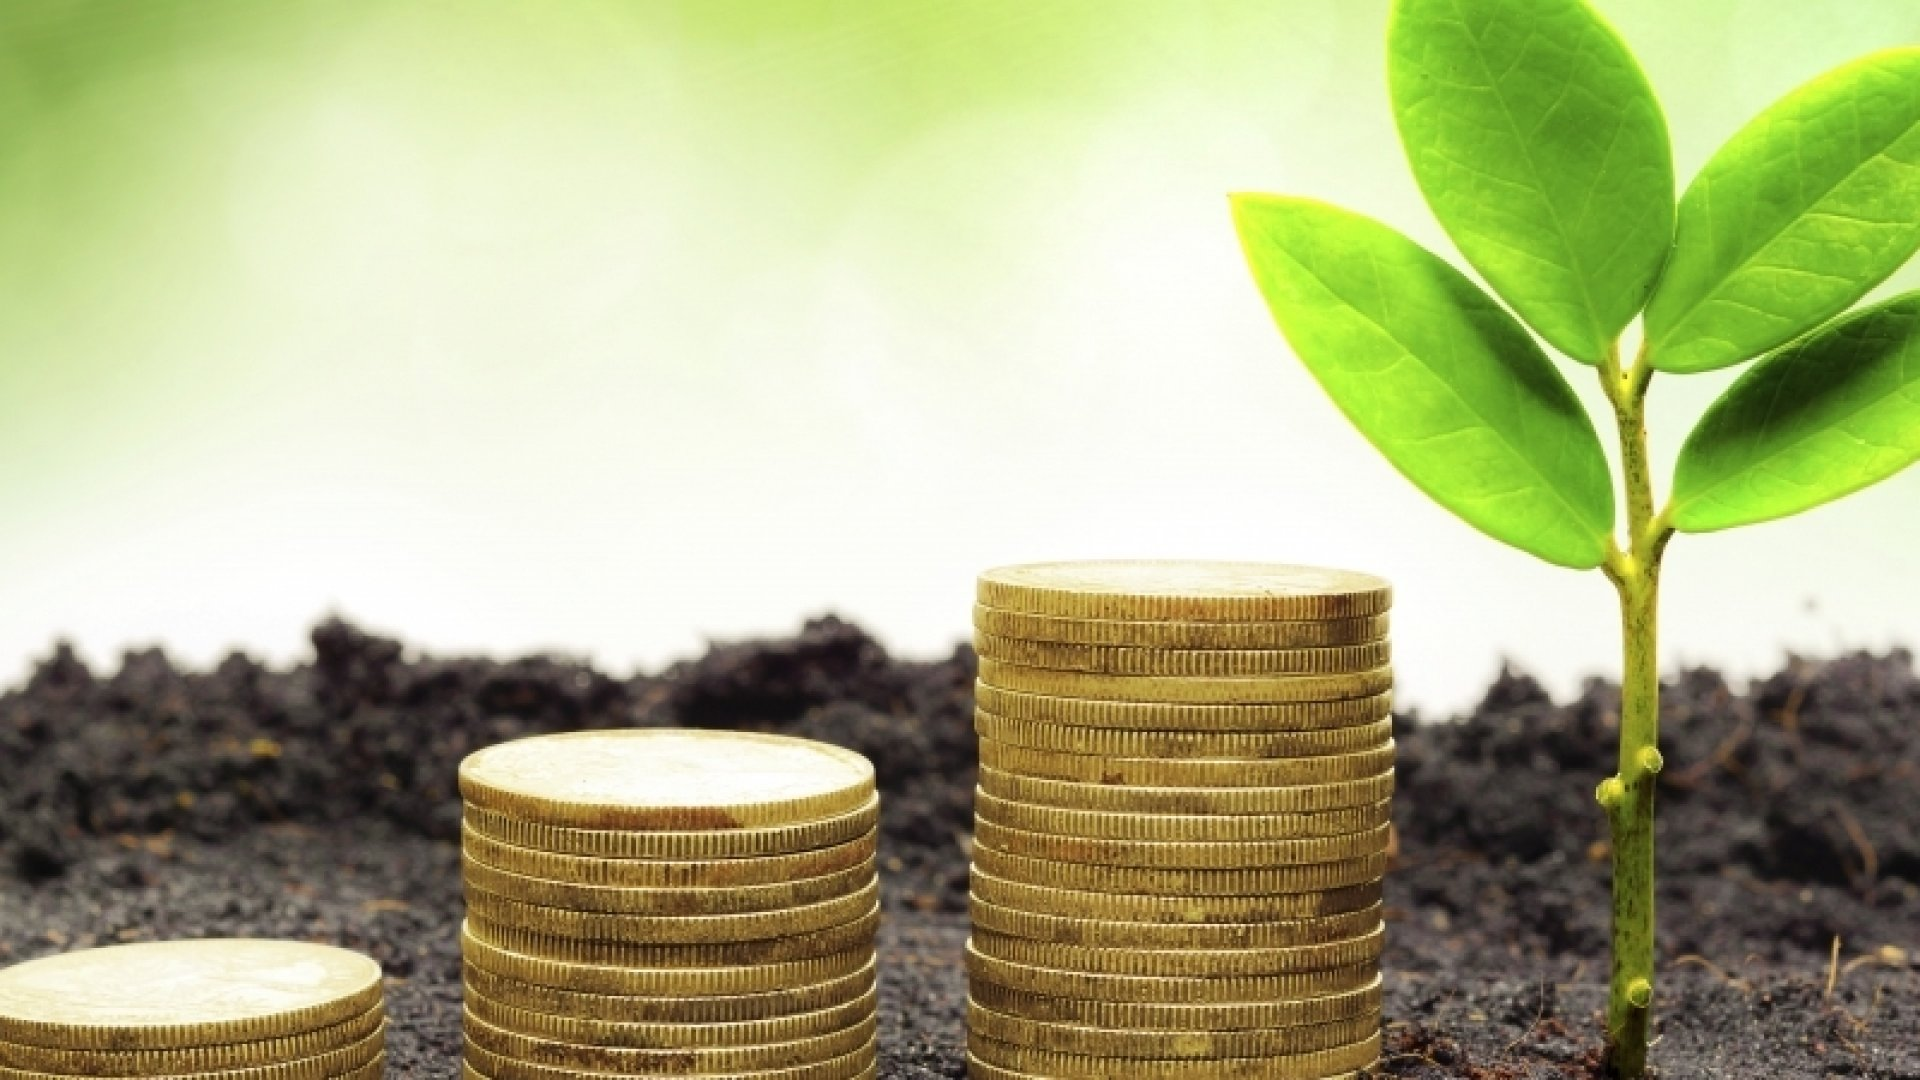 6 Sustainability Investing Trends for 2015